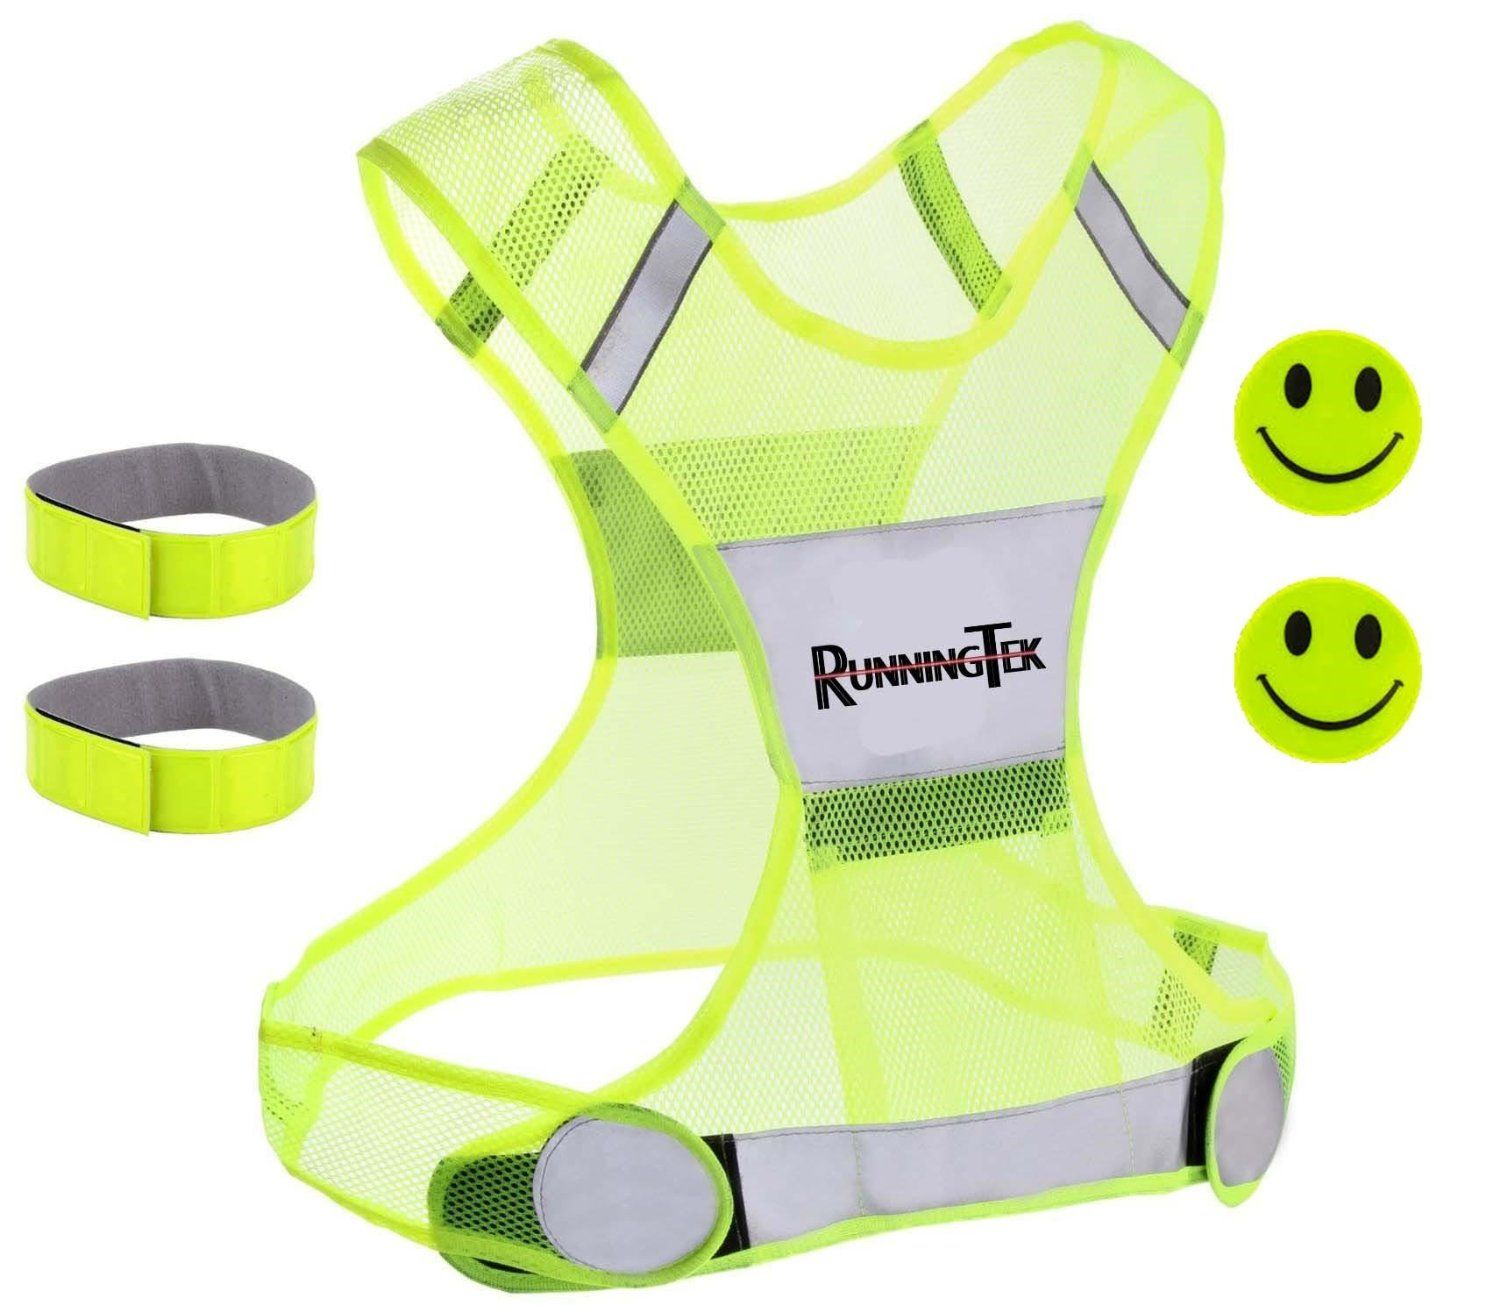 Safety Reflective Running Gear for Men and Women for Night Running Reflective Tape Bands Clothing HiVisible Reflective Vest for Walking High Visibility Vest Reflective Running Vest